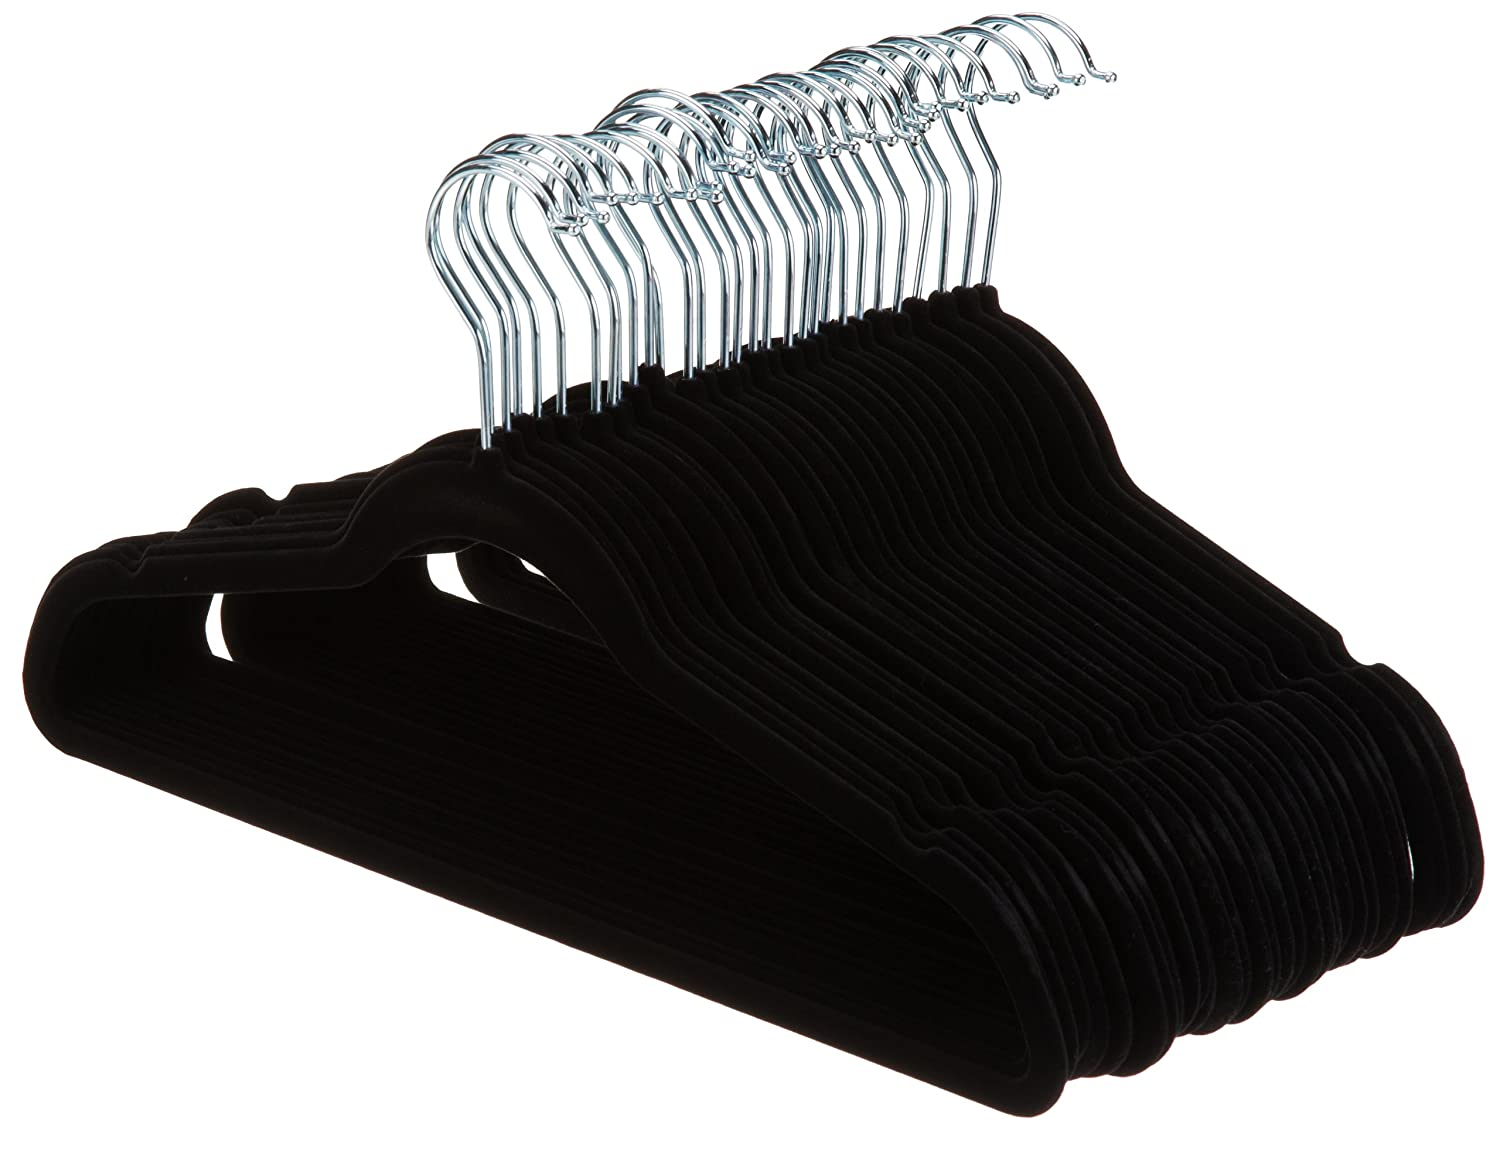 AmazonBasics Velvet Suit Hangers - 30-Pack, Black